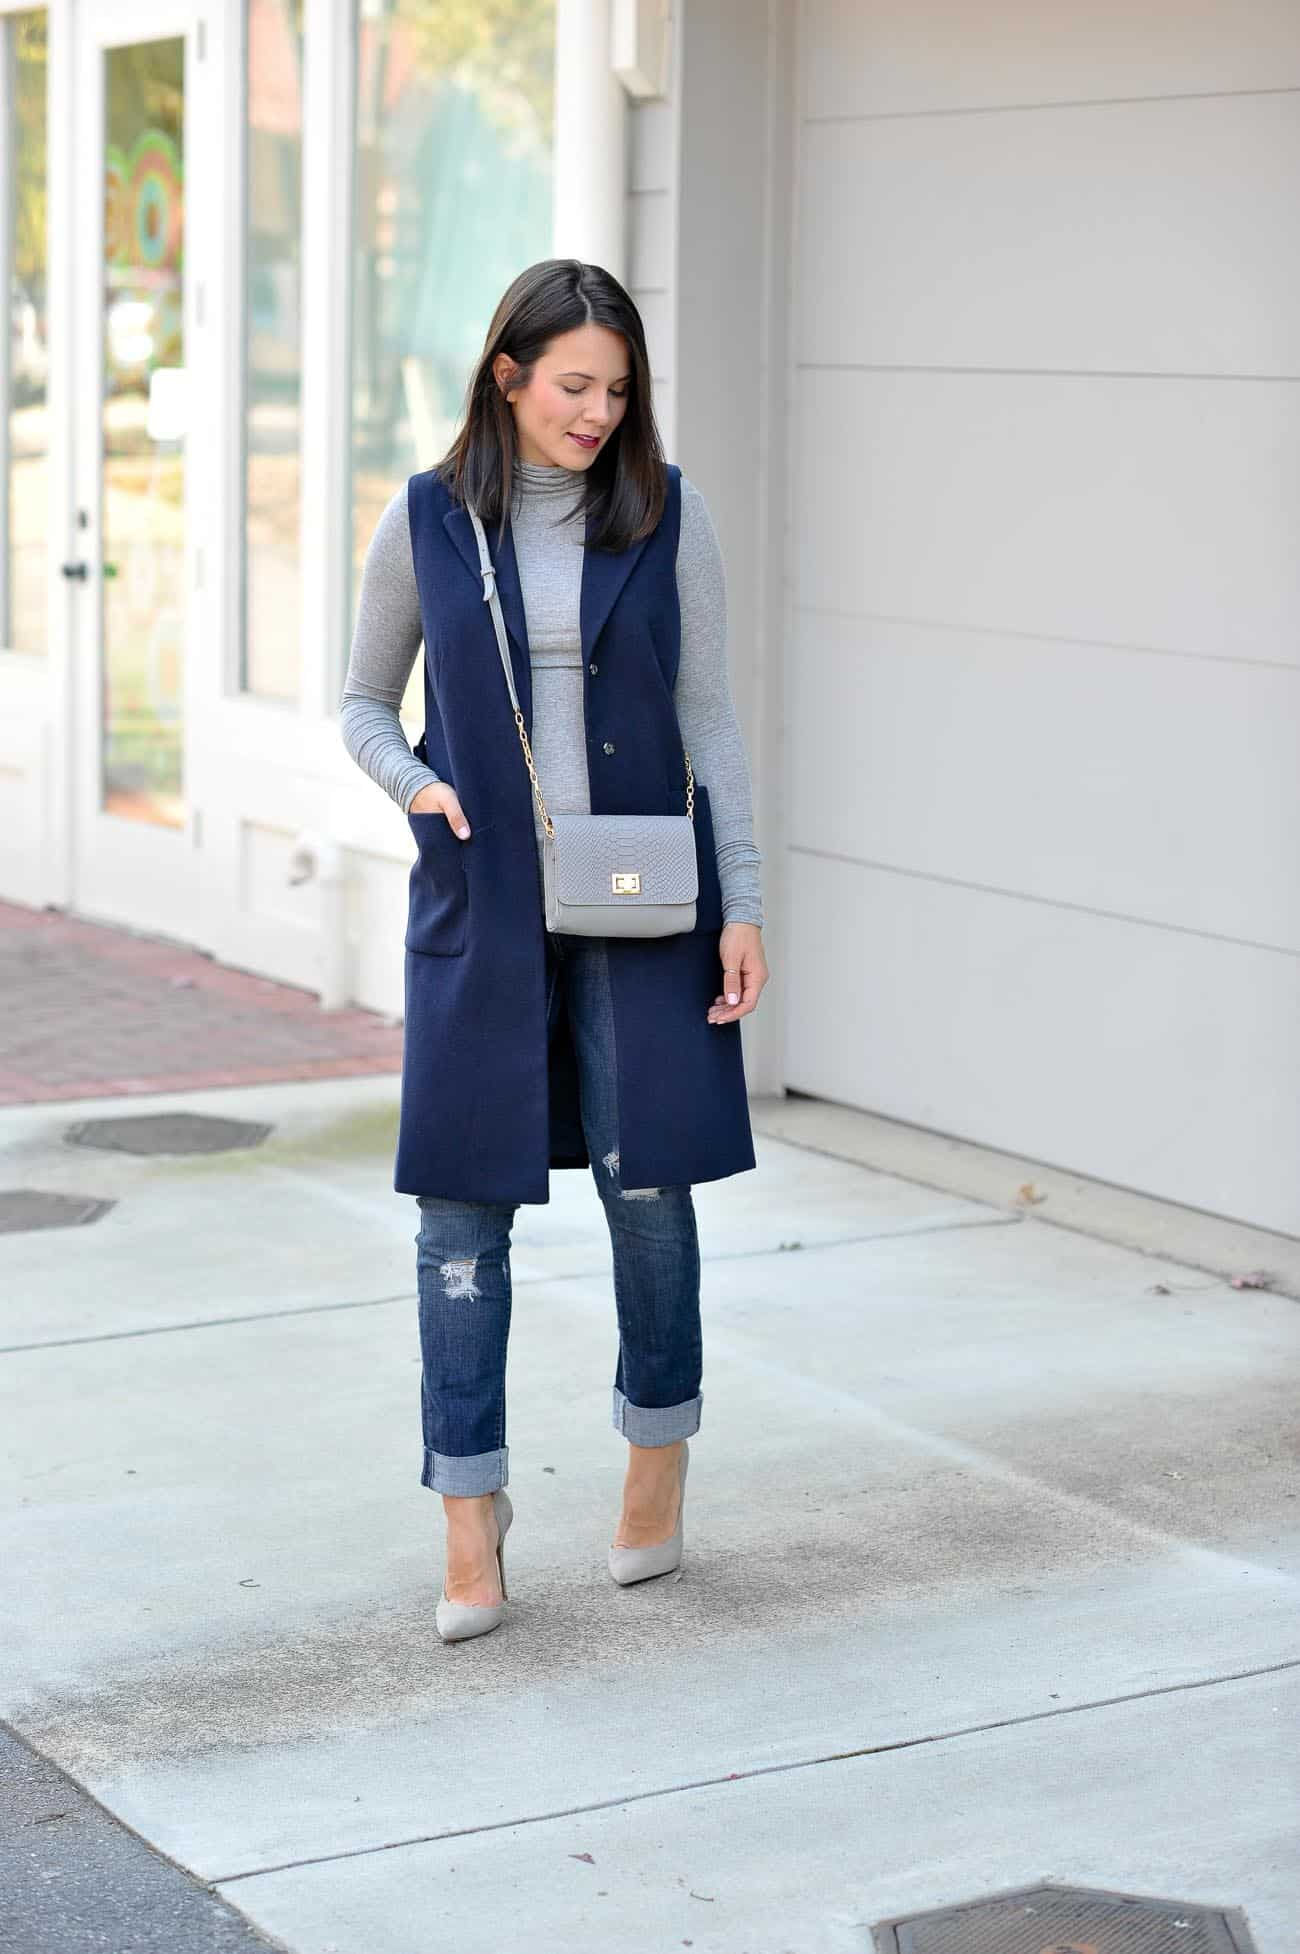 Sleeveless trench coat, fall casual outfit ideas - My Style Vita @mystylevita